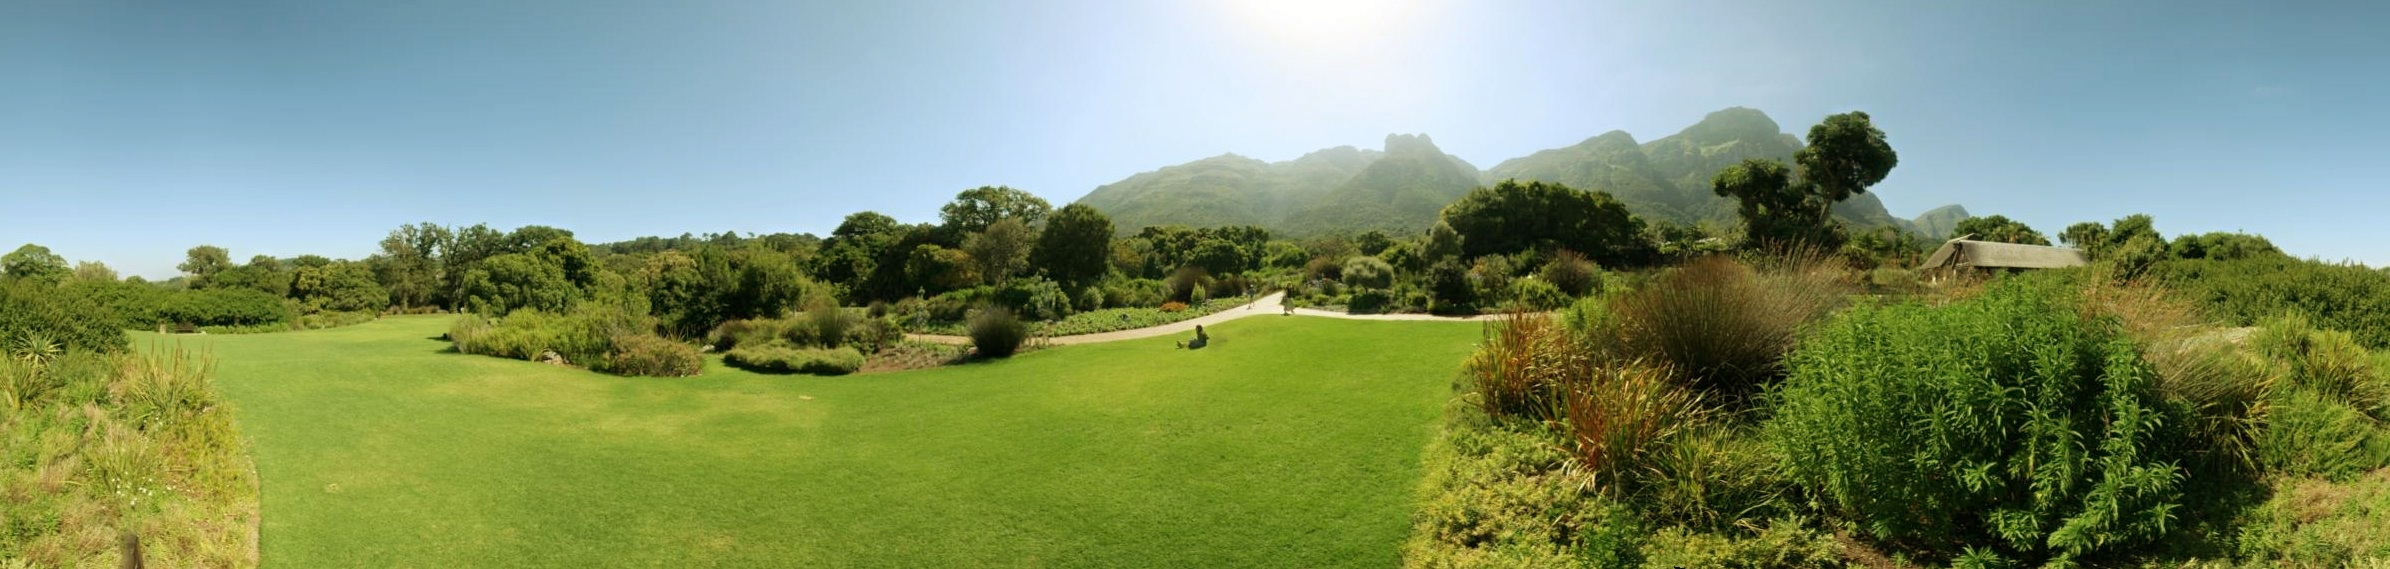 Kirstenbosch National Botanical Garden Private Places